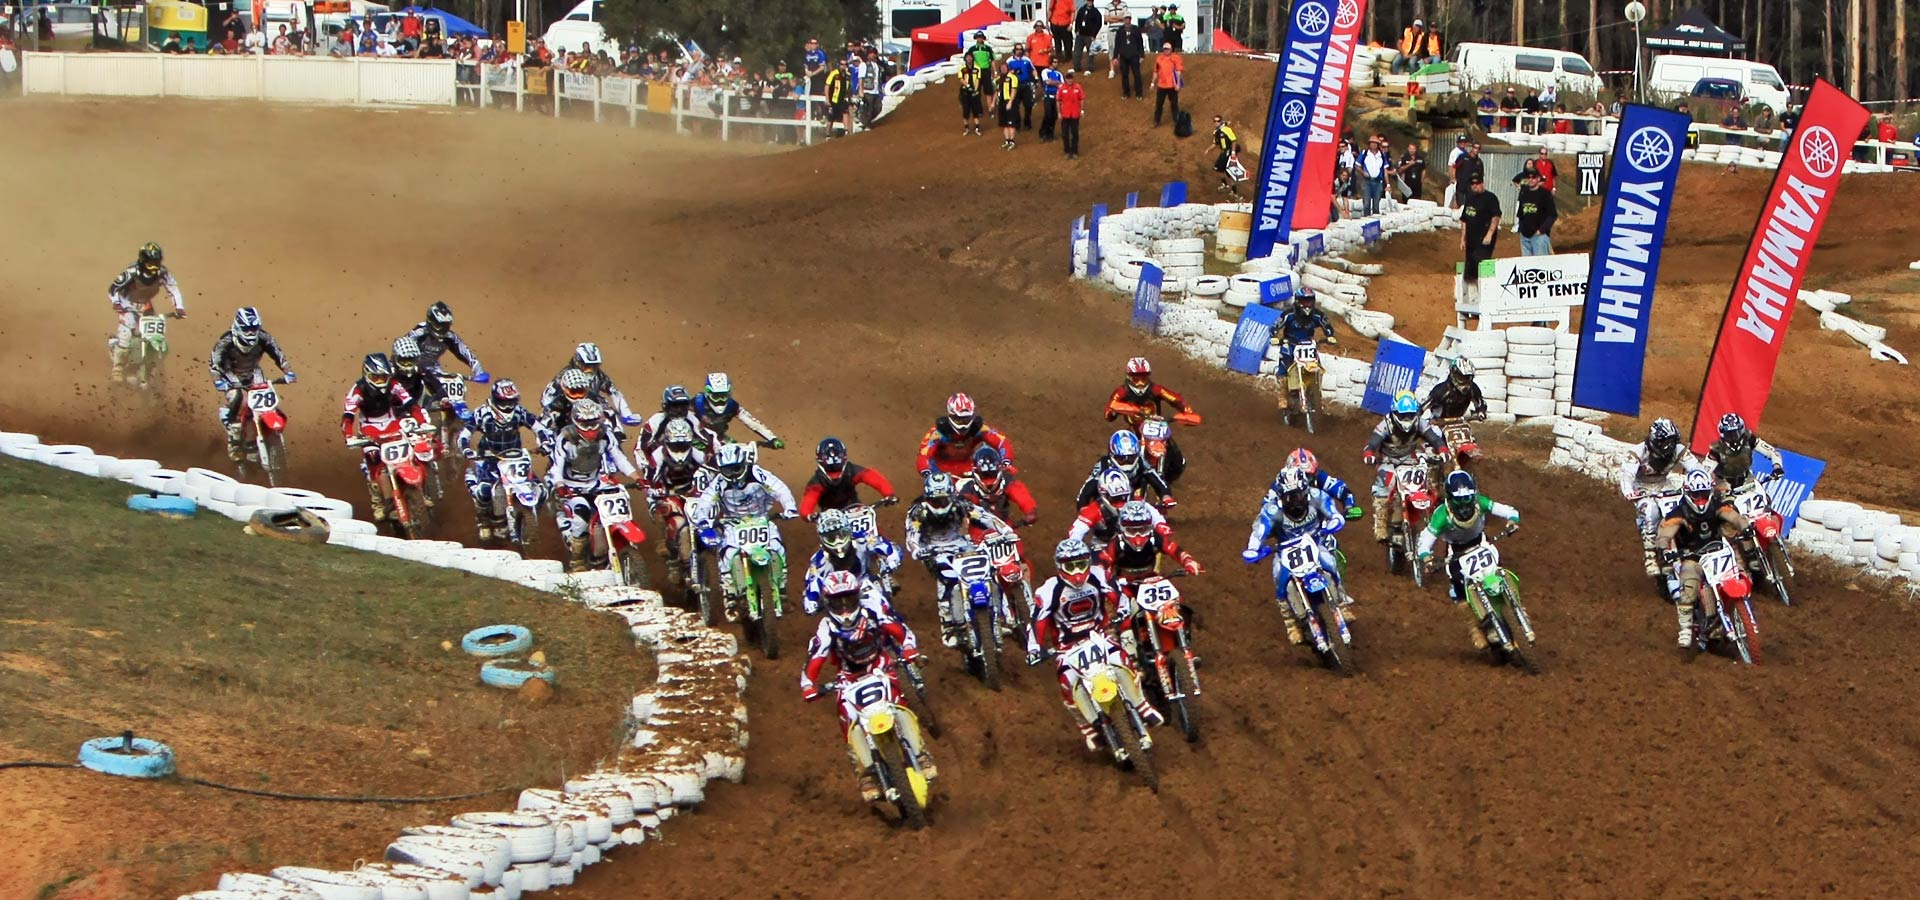 WELCOME TO THE COASTAL MOTOCROSS CLUB